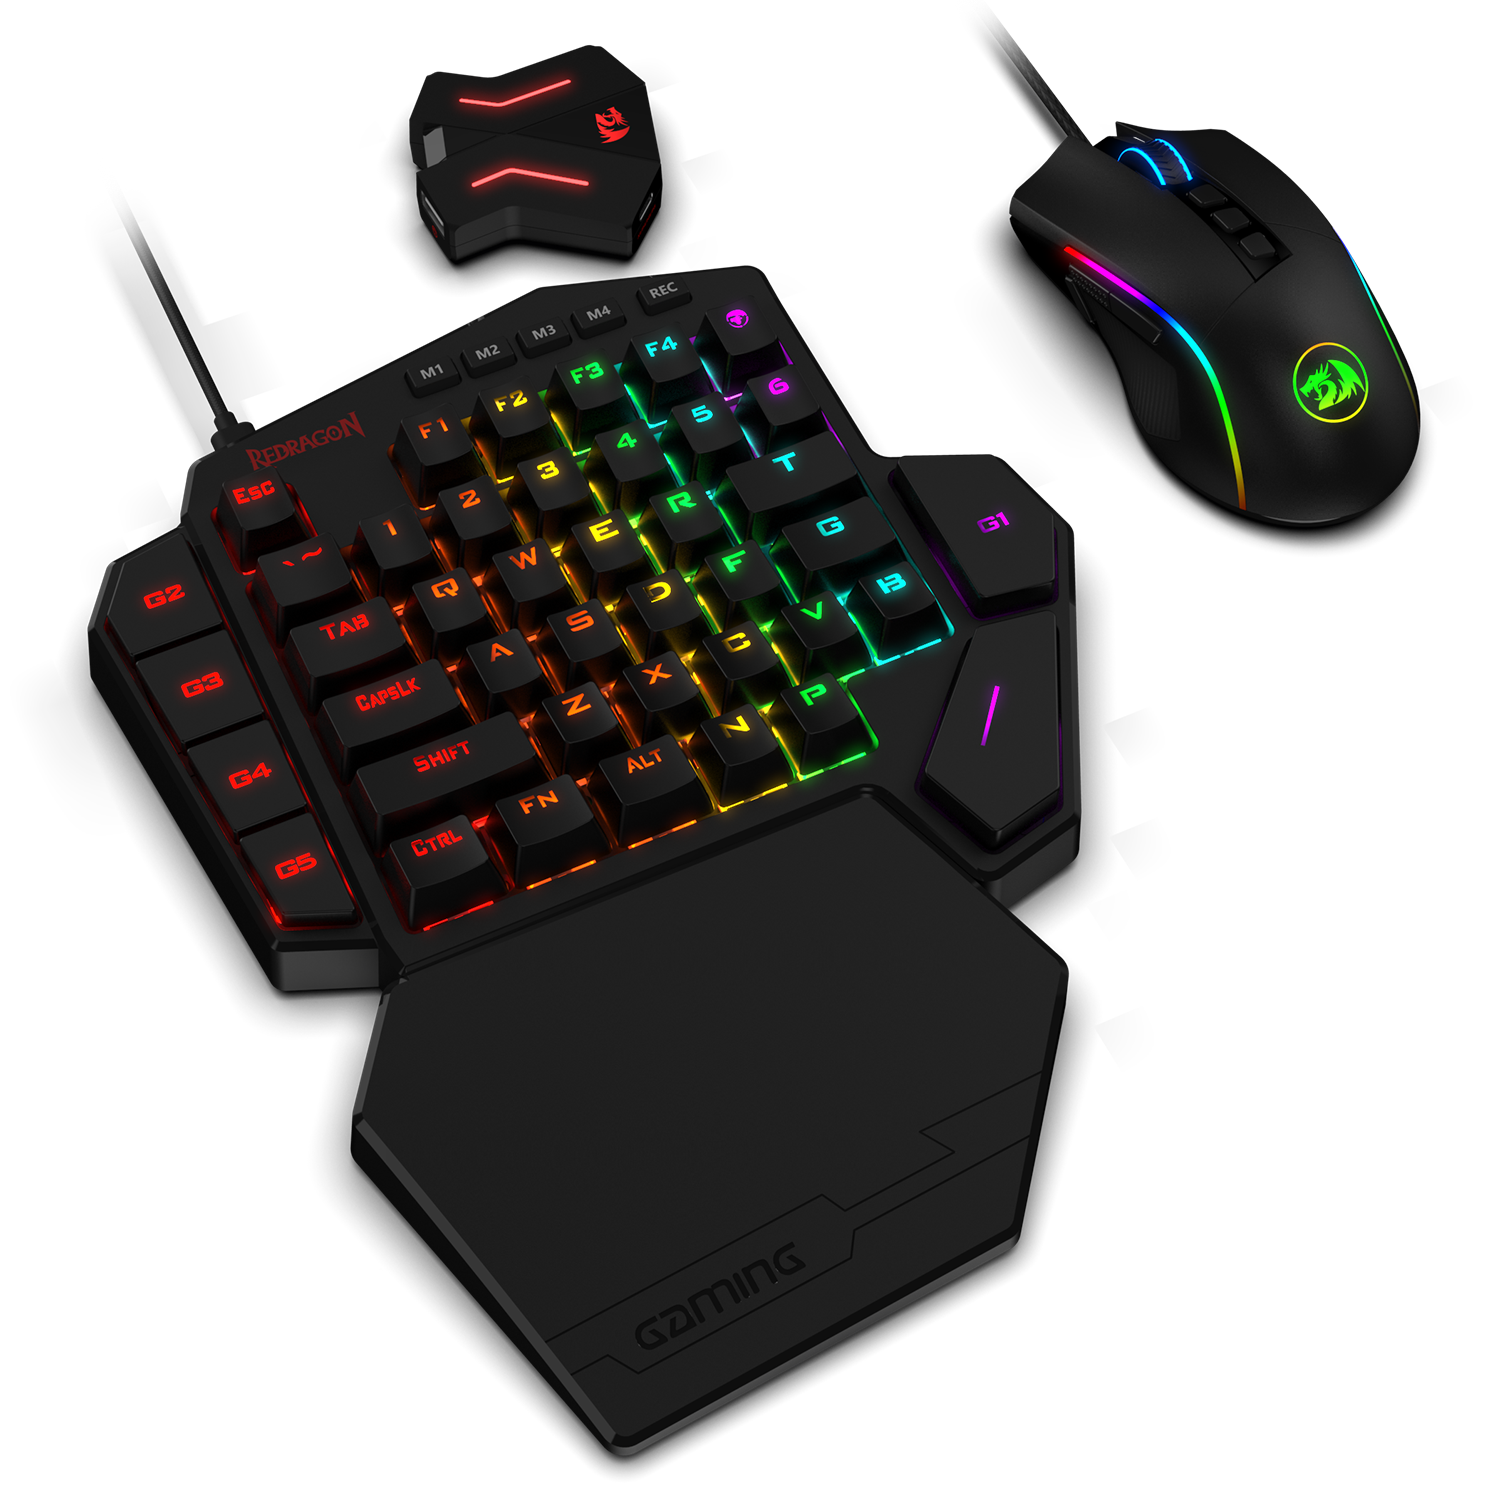 Redragon K585 One Handed Gaming Keyboard And M721 Pro Mouse Combo With Ga200 Converter For Xbox One Ps4 Switch Ps3 And Pc Blue Switch Redragon Zone